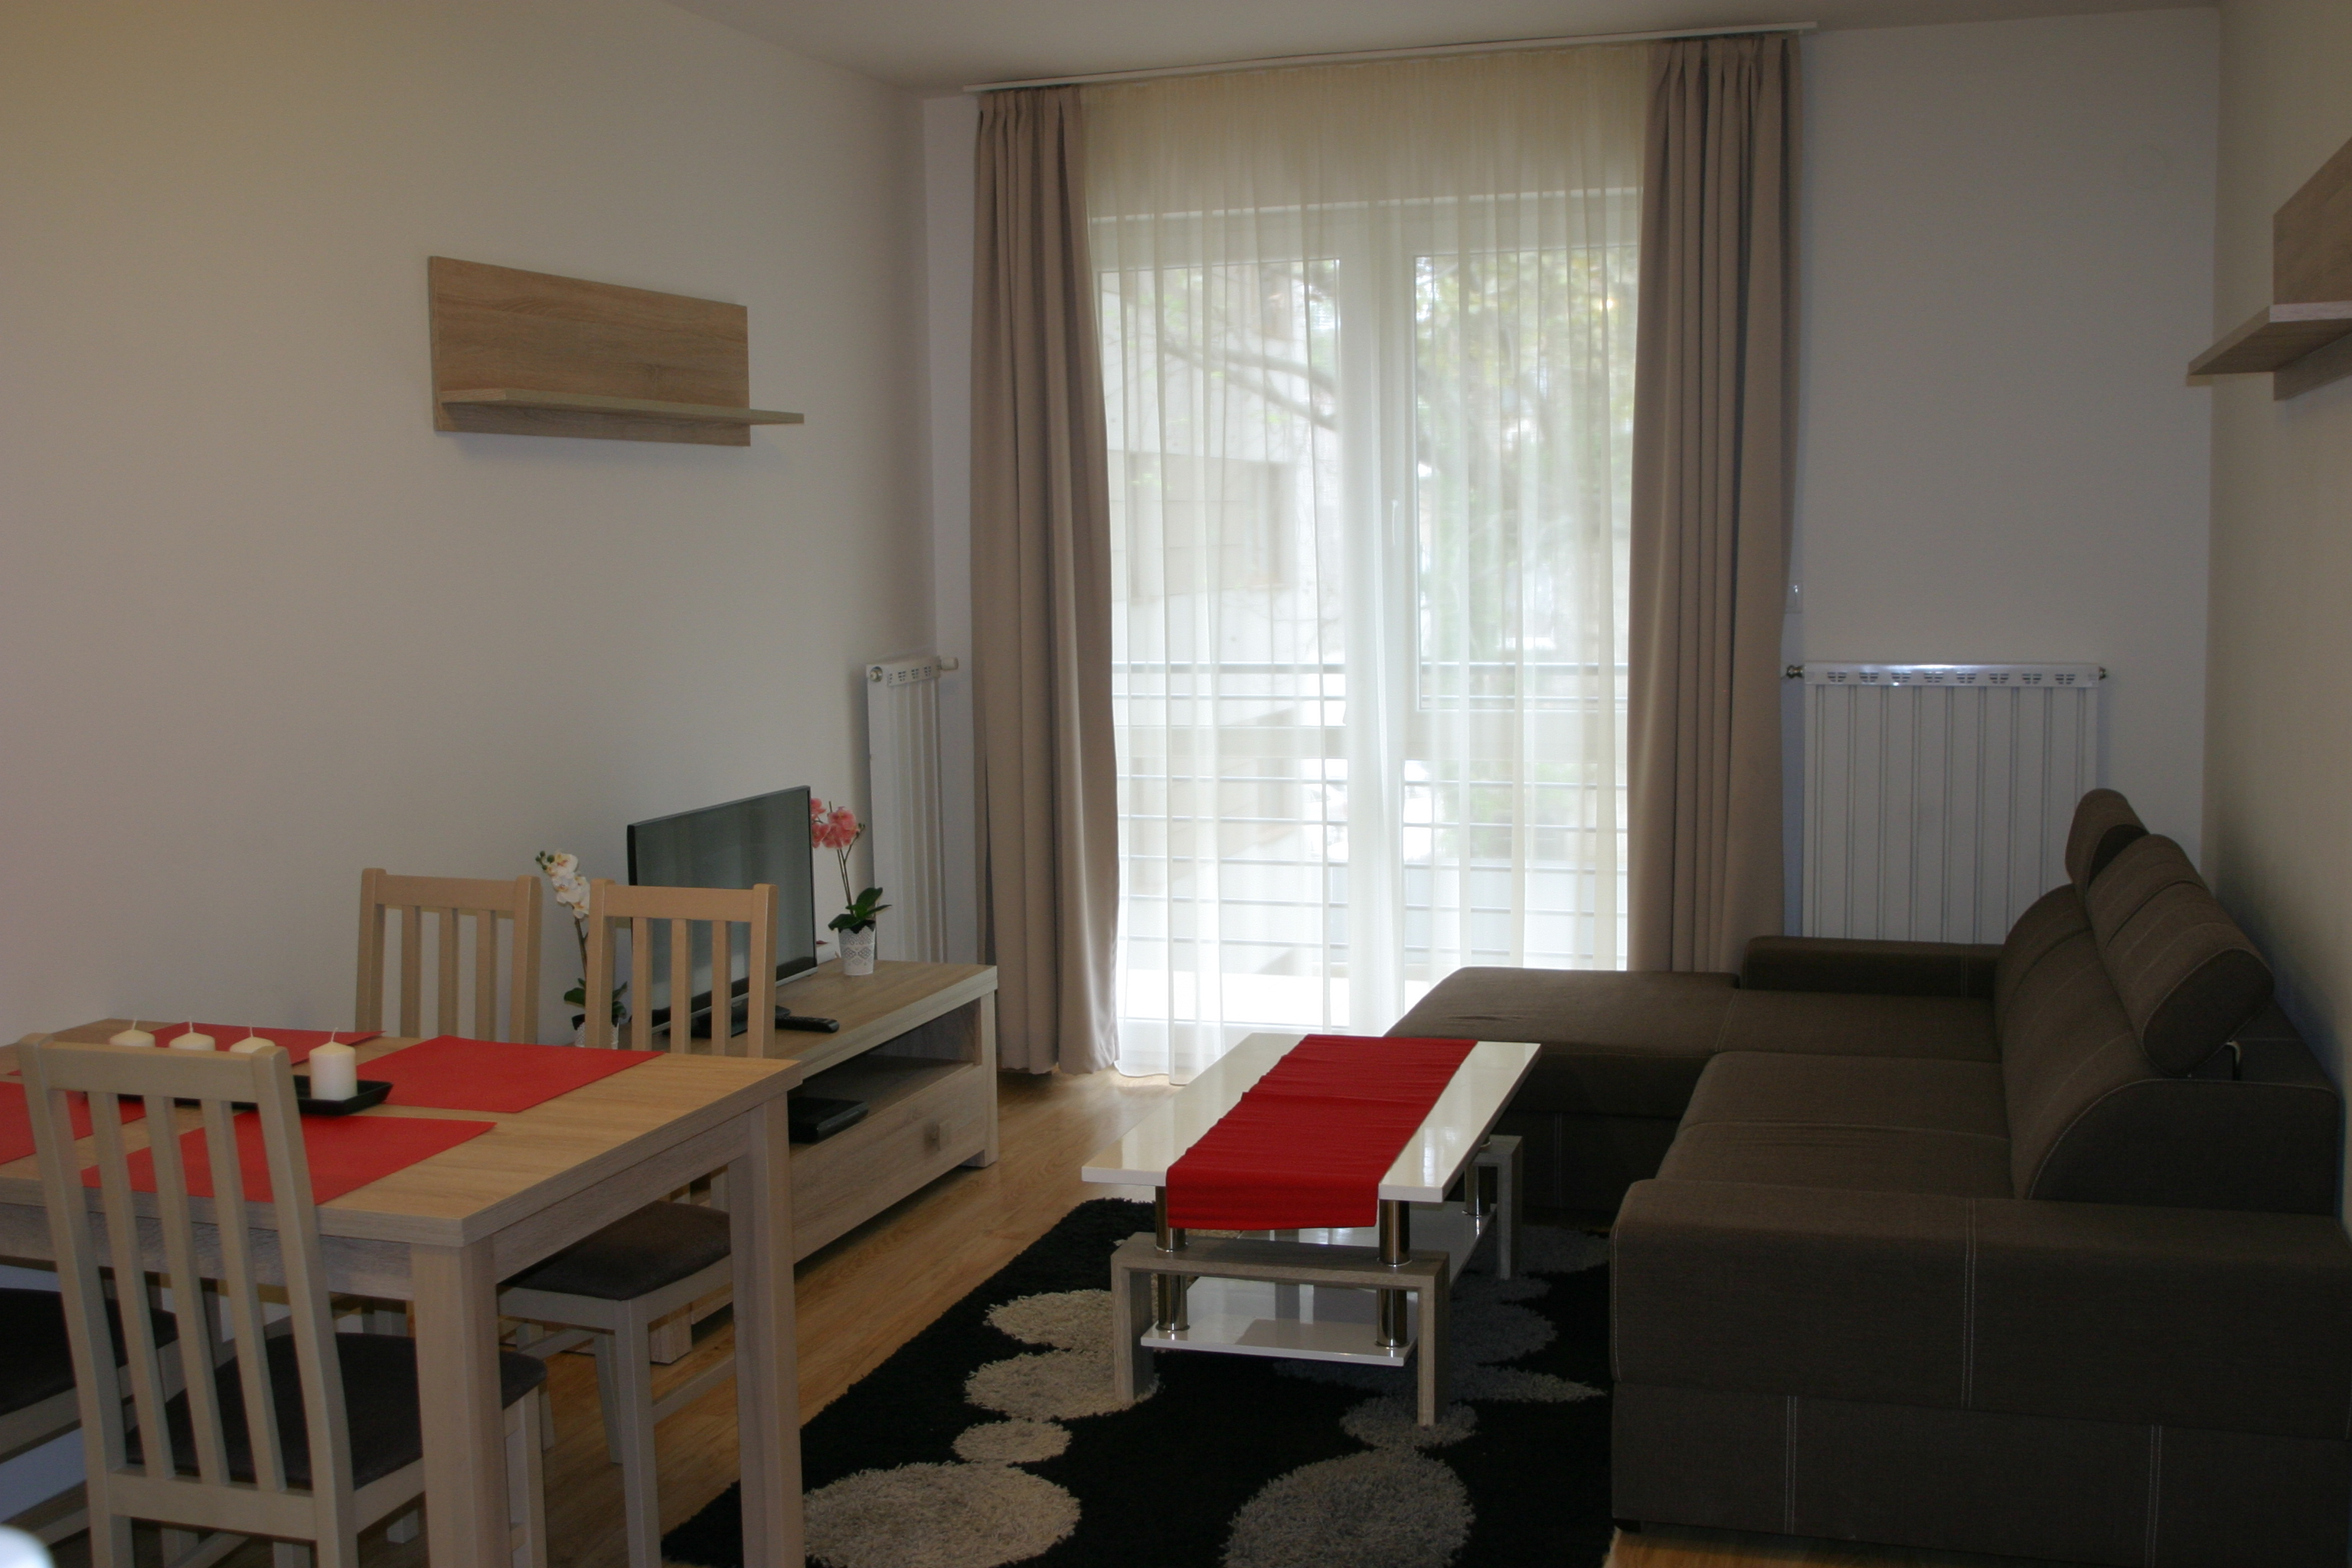 VIII. Kisfaludy Str. 18-20. Apartment 605